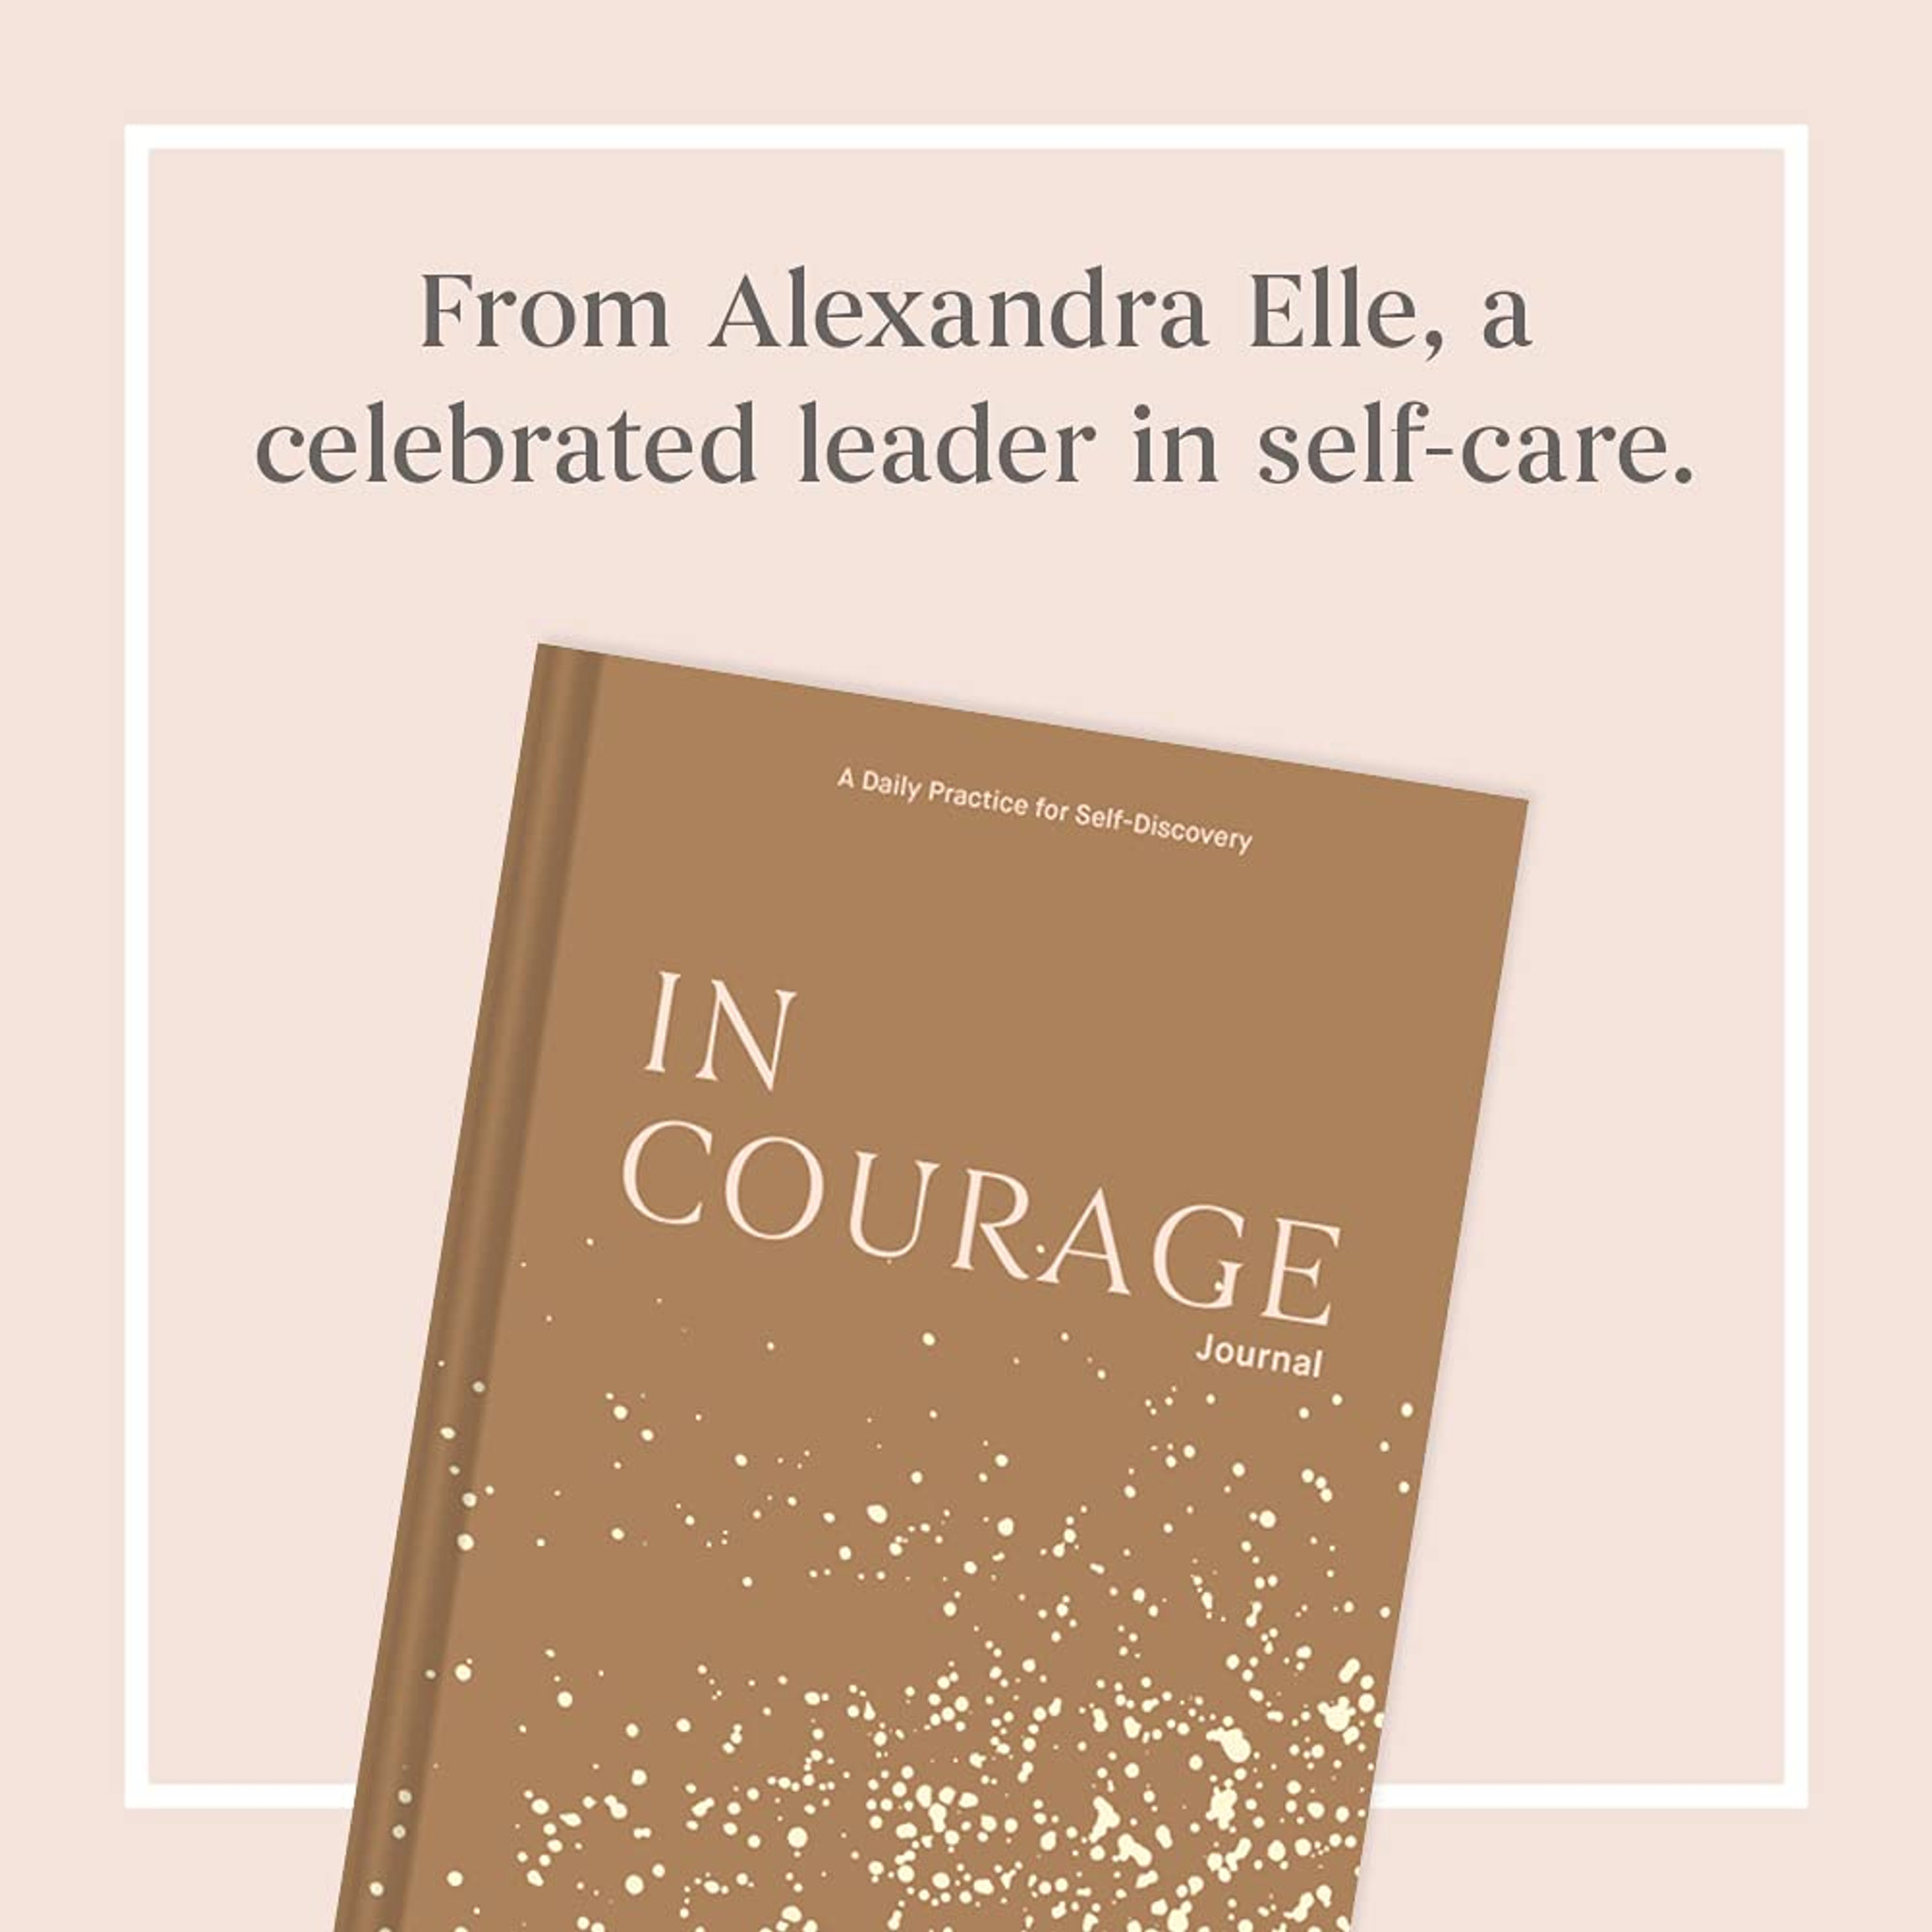 In Courage Journal